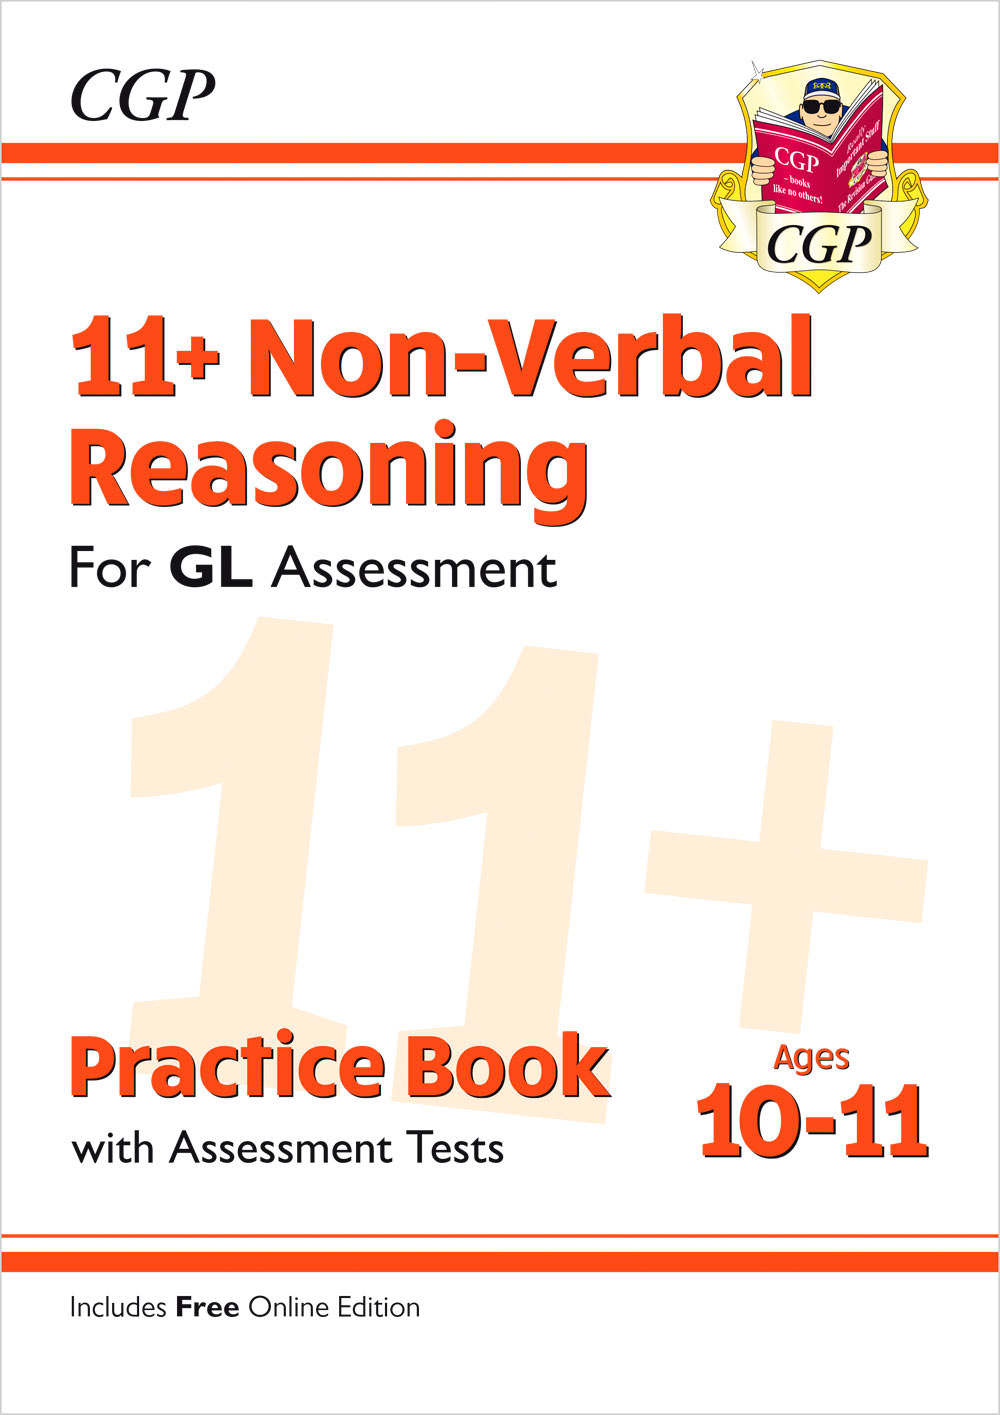 N6QE2 - New 11+ GL Non-Verbal Reasoning Practice Book & Assessment Tests - Ages 10-11 (with Online E